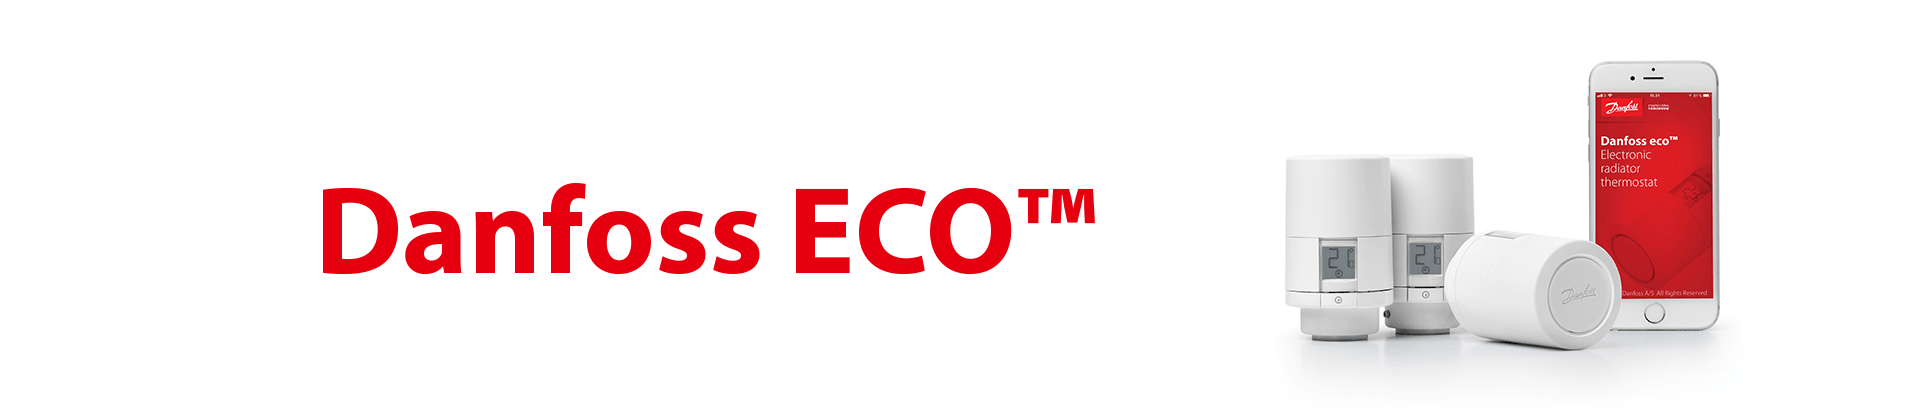 Danfoss eco banner